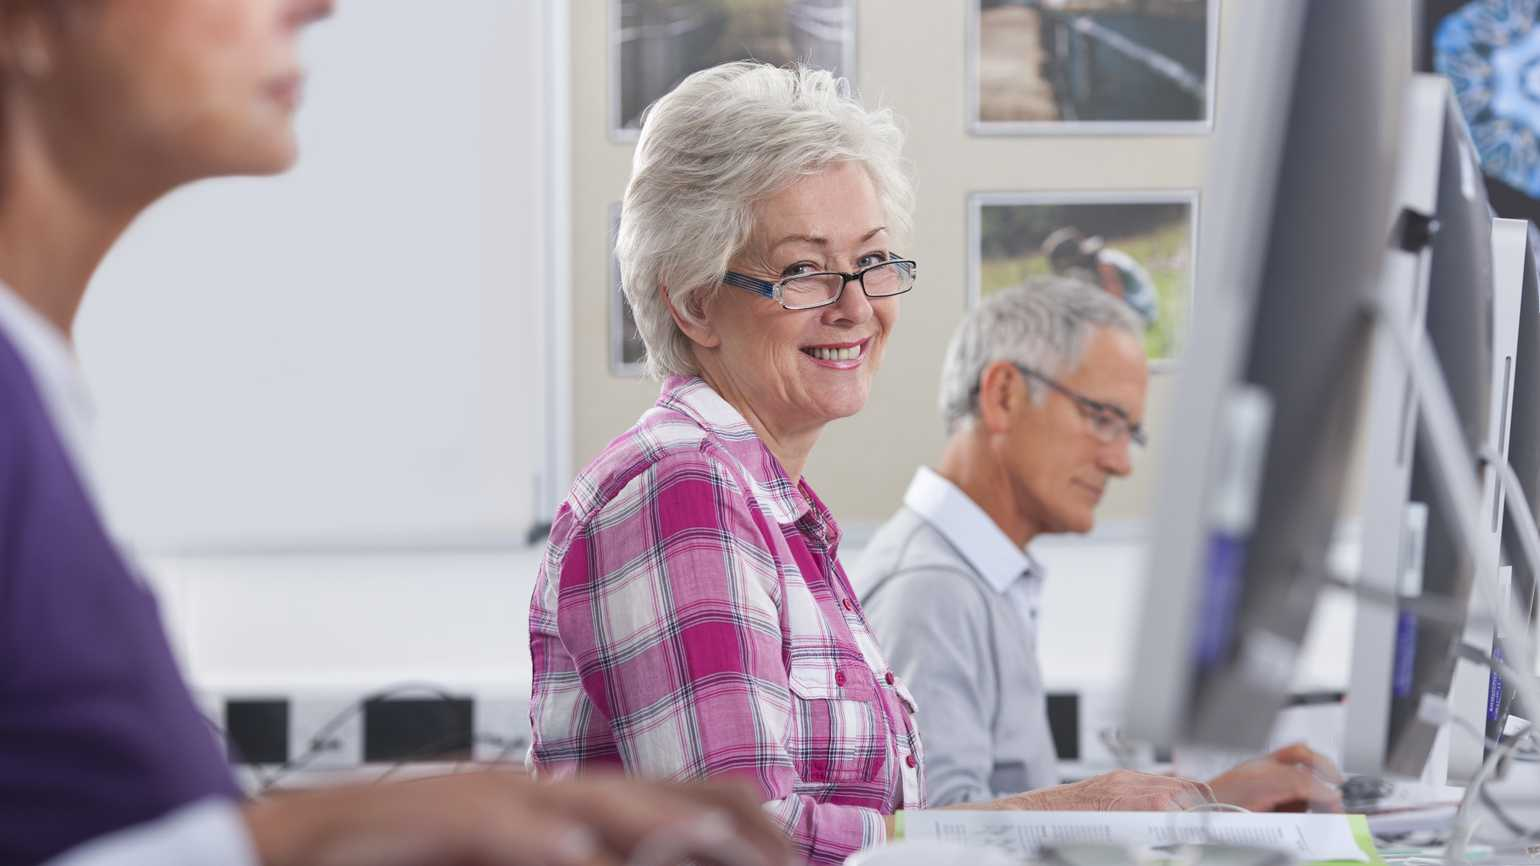 A smiling senior citizen woman learning how to use the Internet in a classroom.